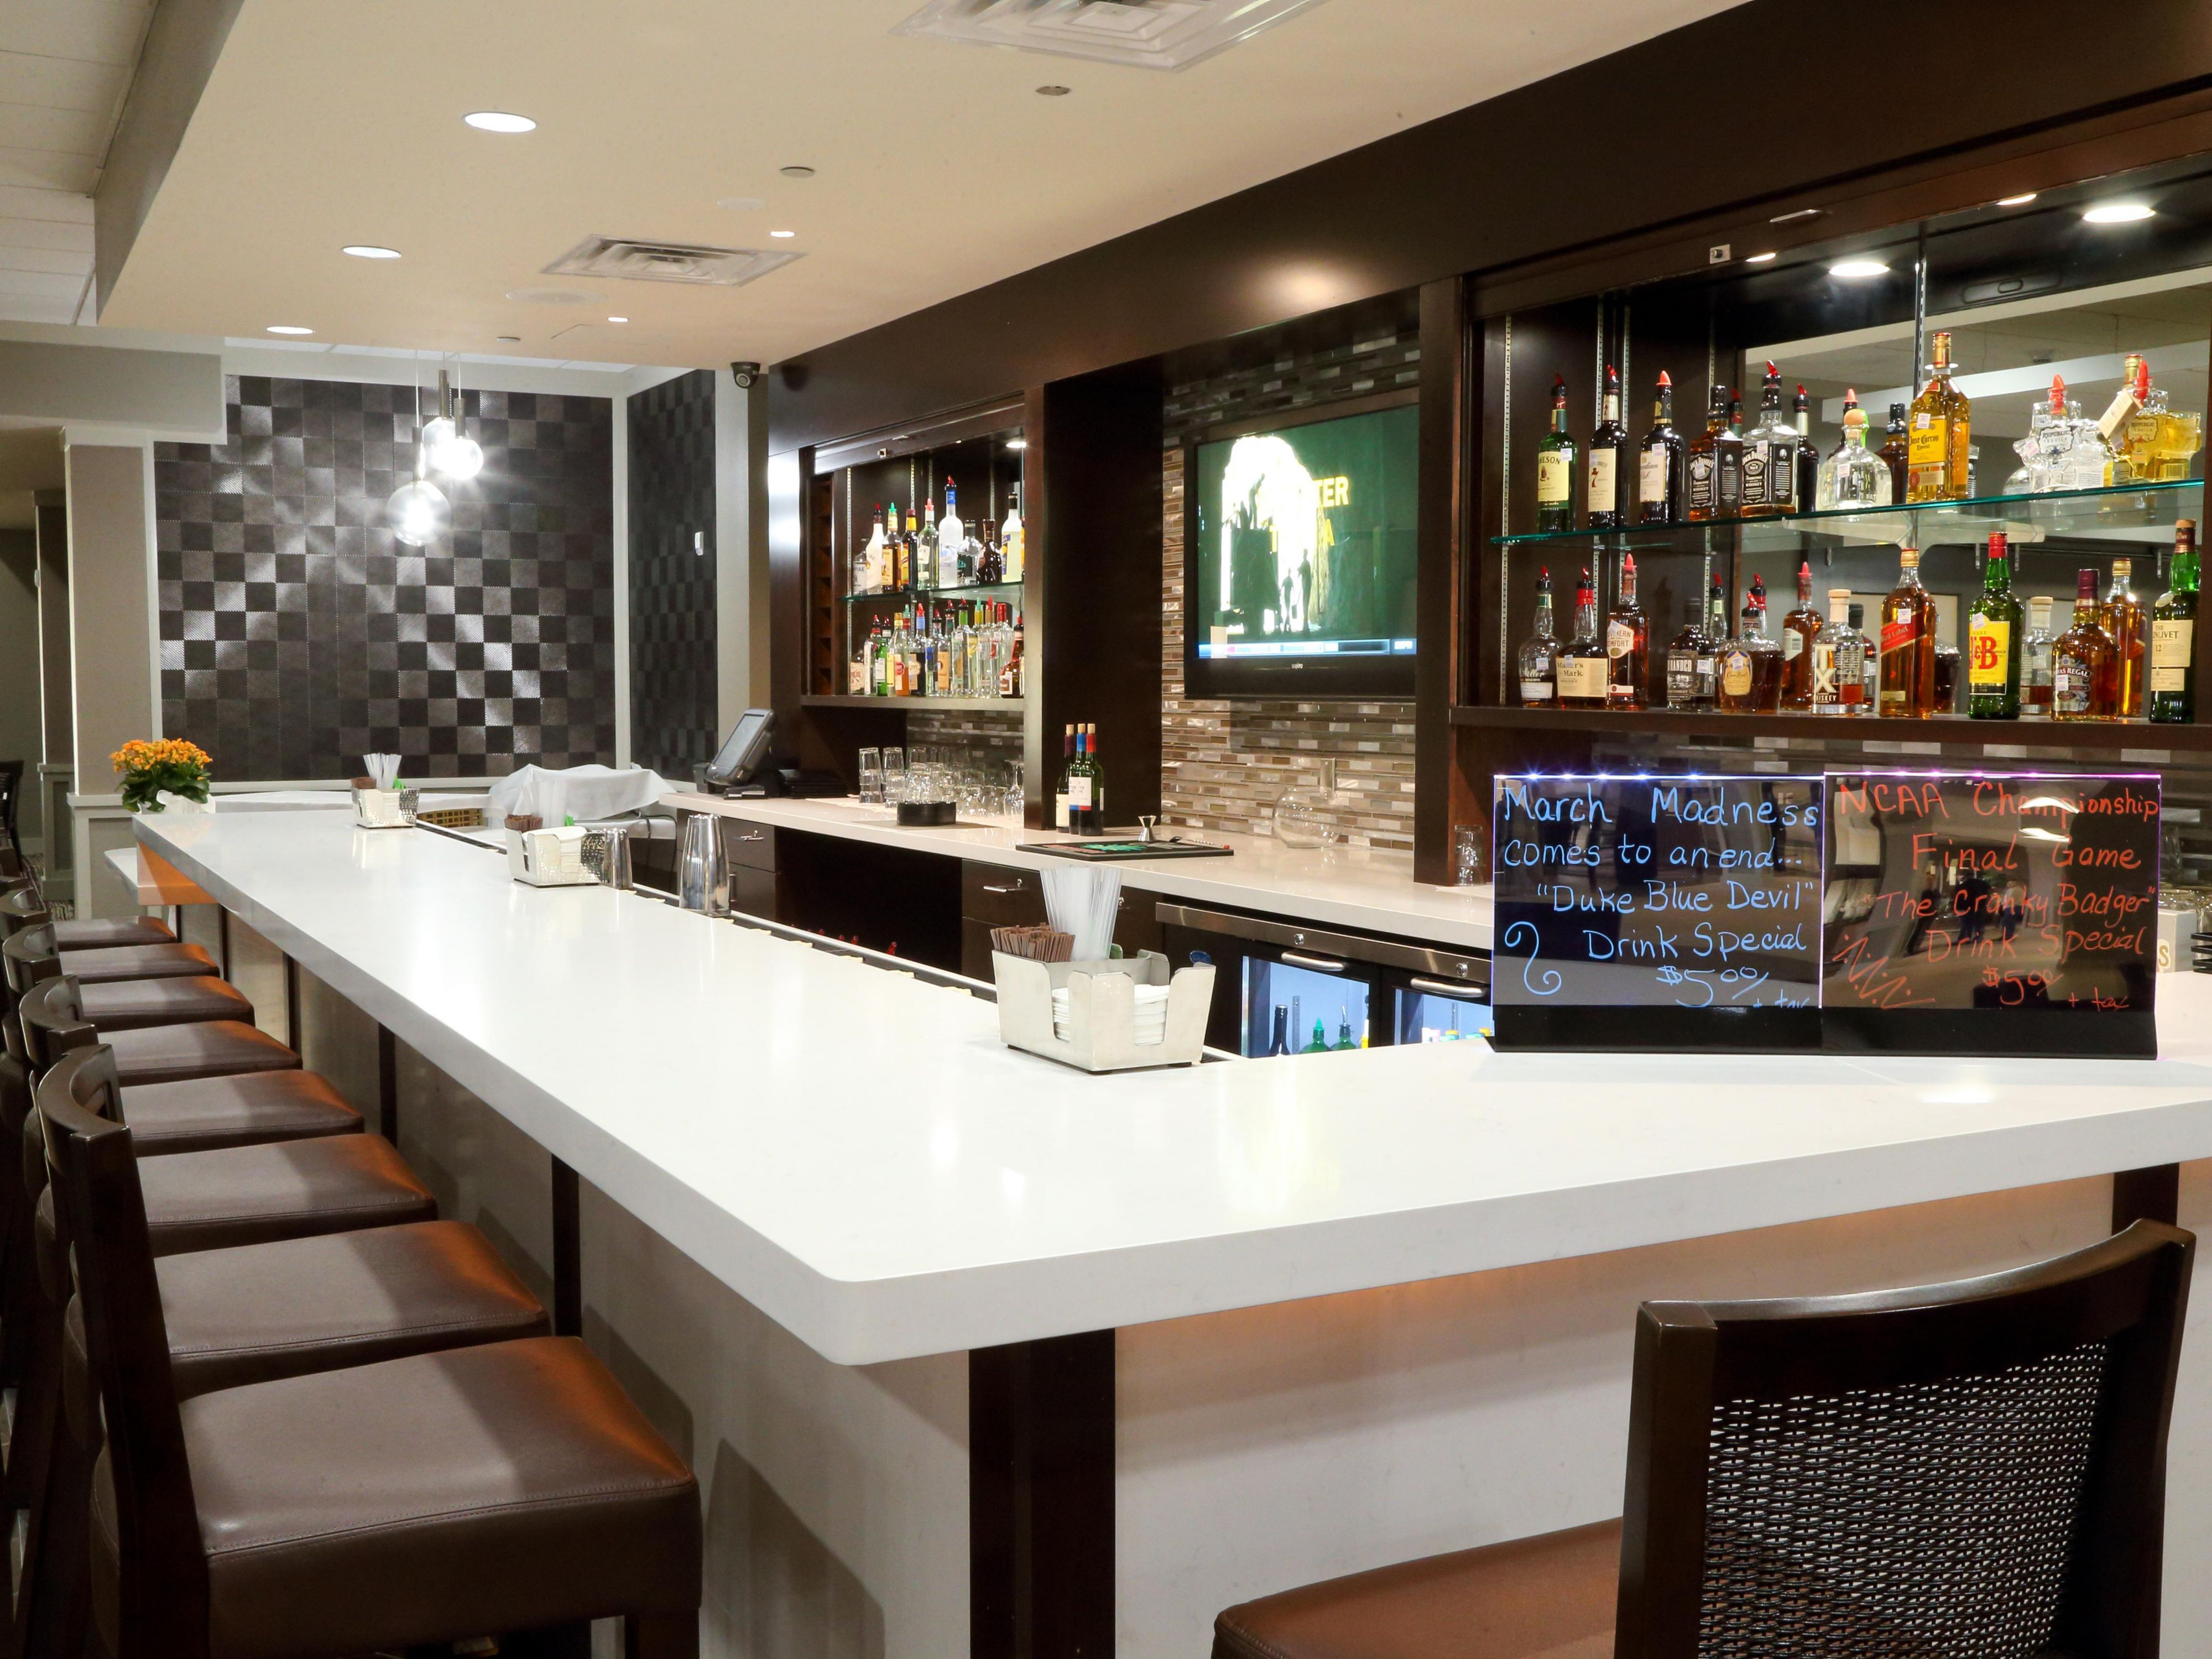 Summerfield's Bar and Grille